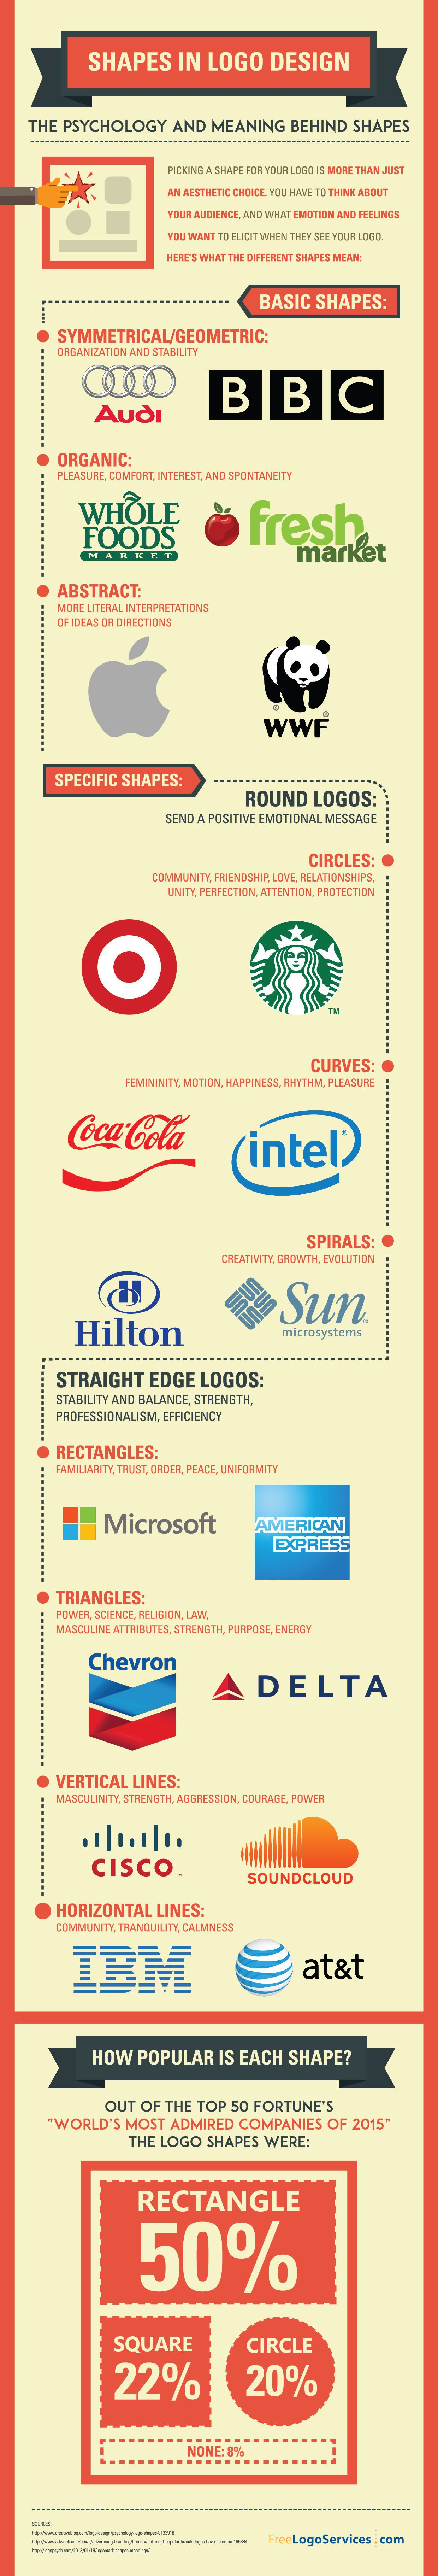 Shapes in Logo Design The Psychology & Meaning Behind Logo Shapes